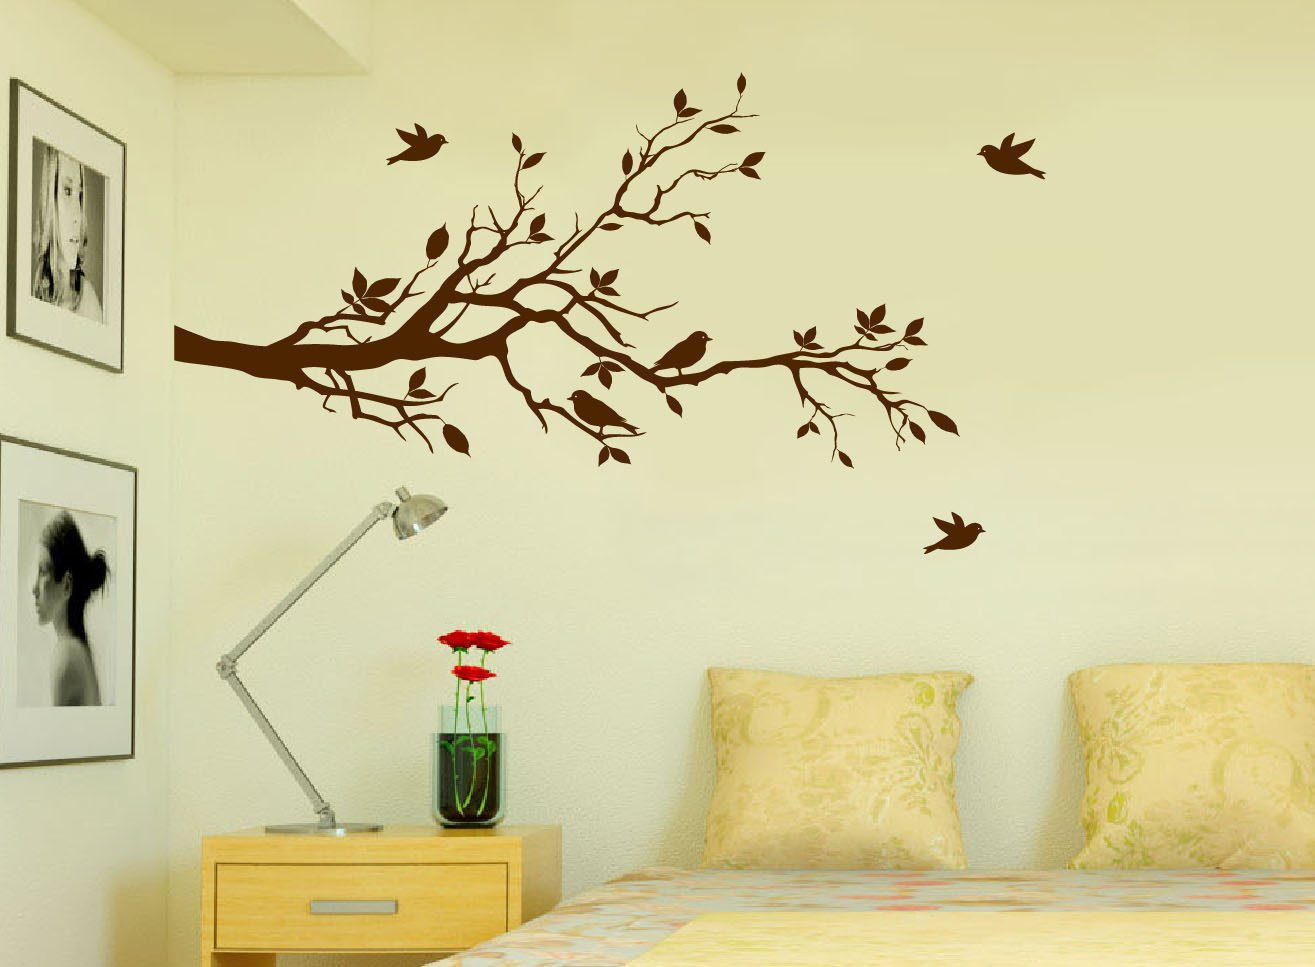 Amazon.com: Tree Branches Wall Decal Love Birds Vinyl Sticker ...